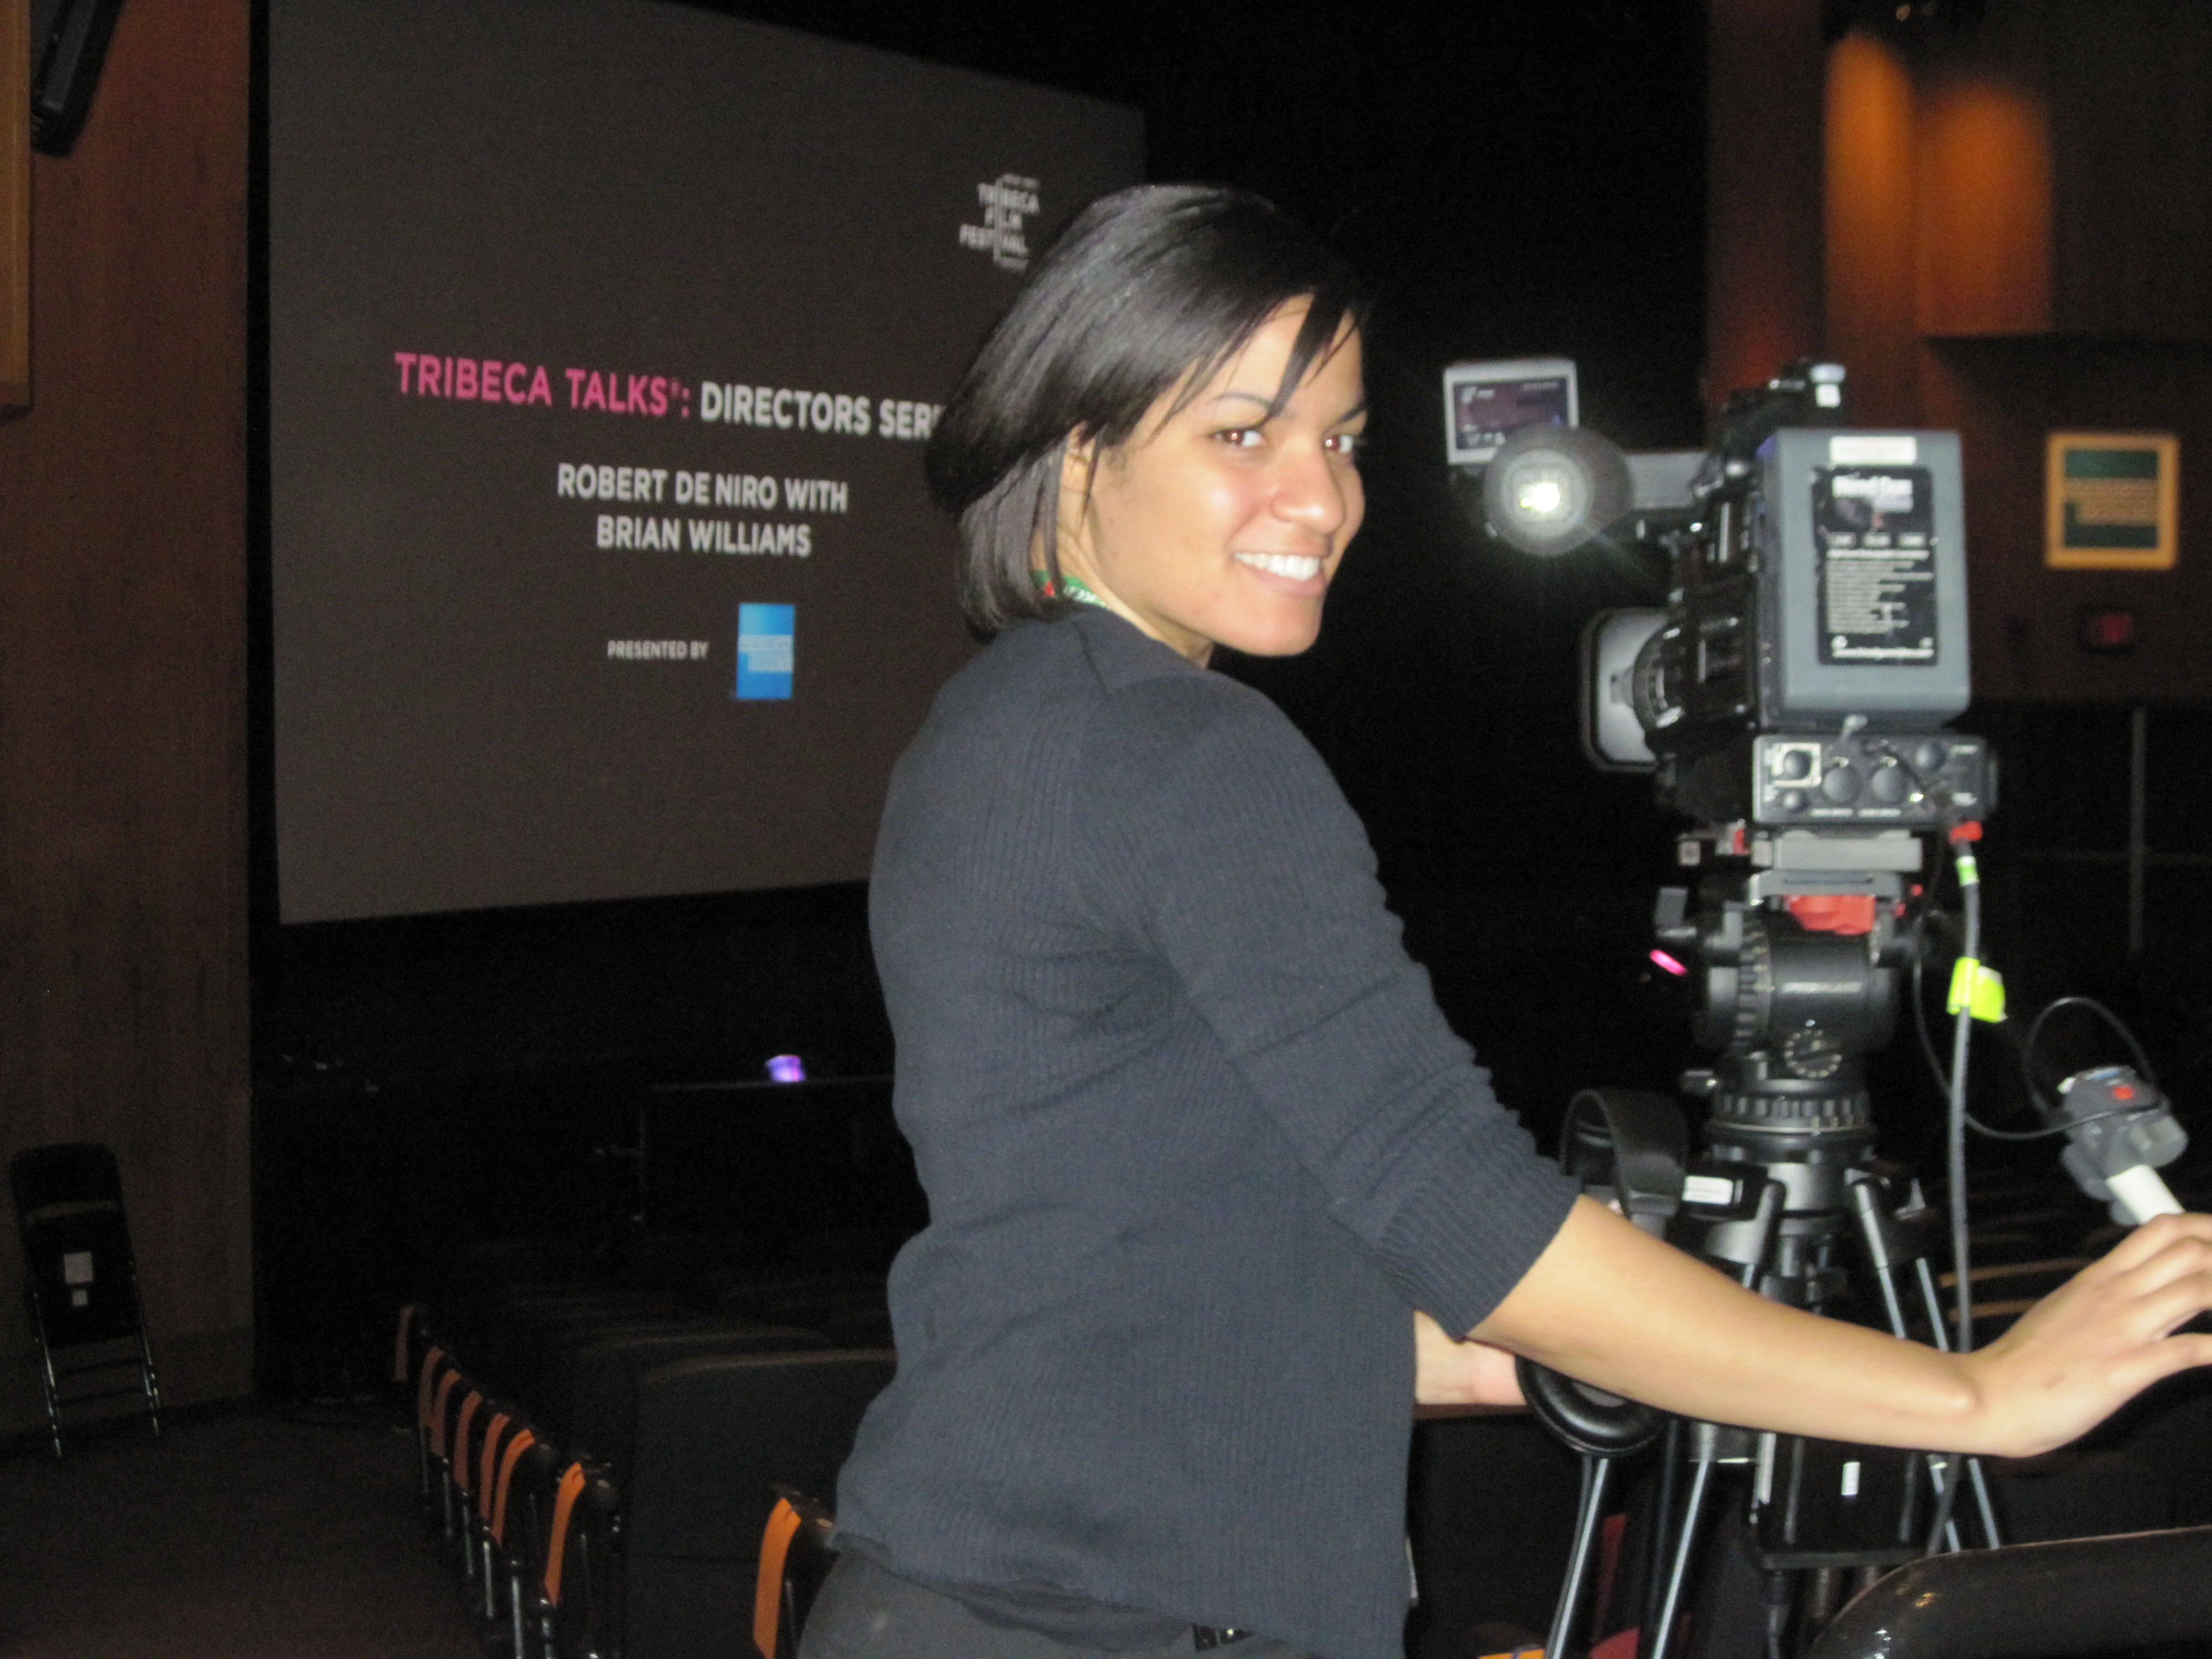 Live video production Tribeca 2011